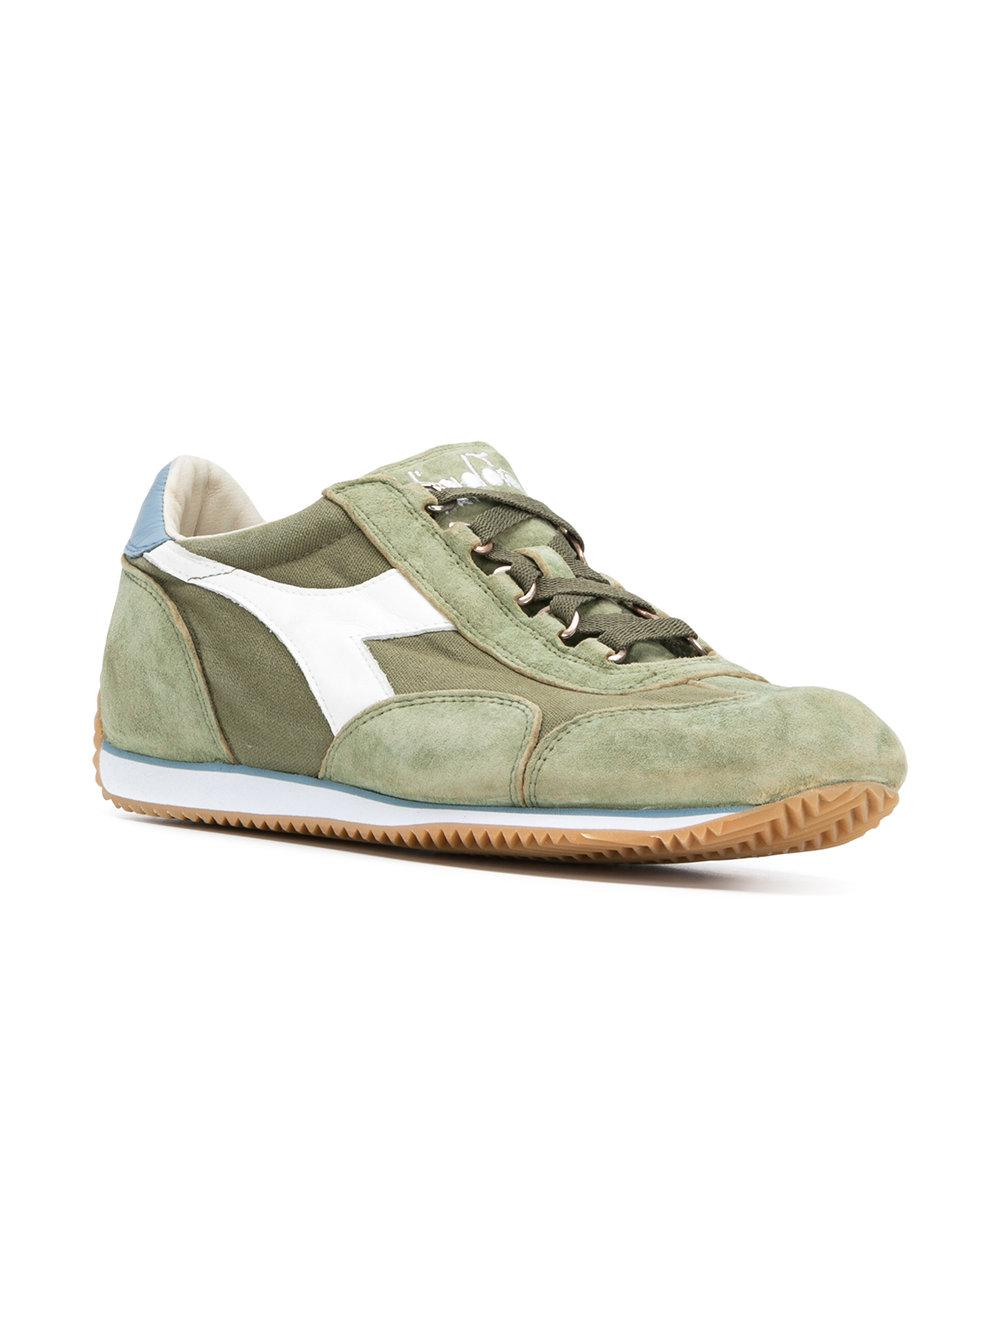 100% Original Cheap Online Free Shipping Clearance panelled sneakers - Green Diadora Sale For Cheap y3dr1Xpv4